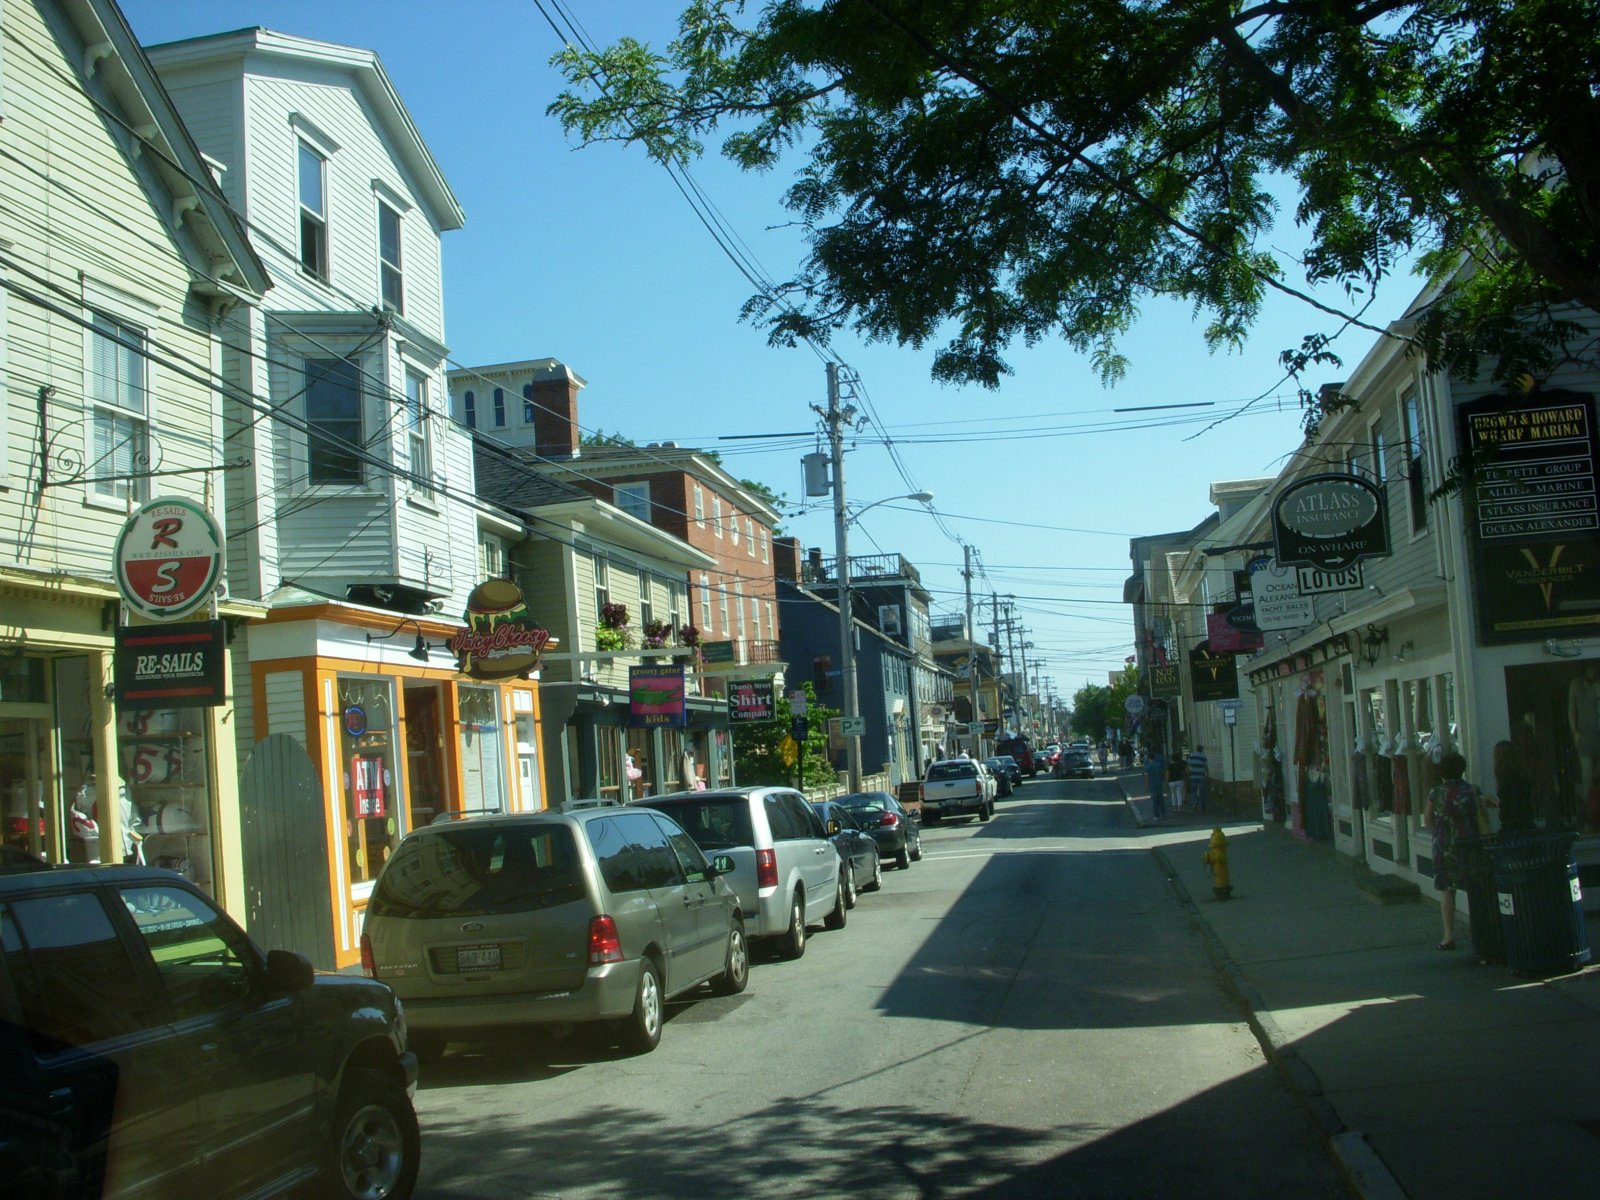 Click image for larger version  Name:Newport,RI. Aug2011 078.jpg Views:76 Size:423.9 KB ID:137981